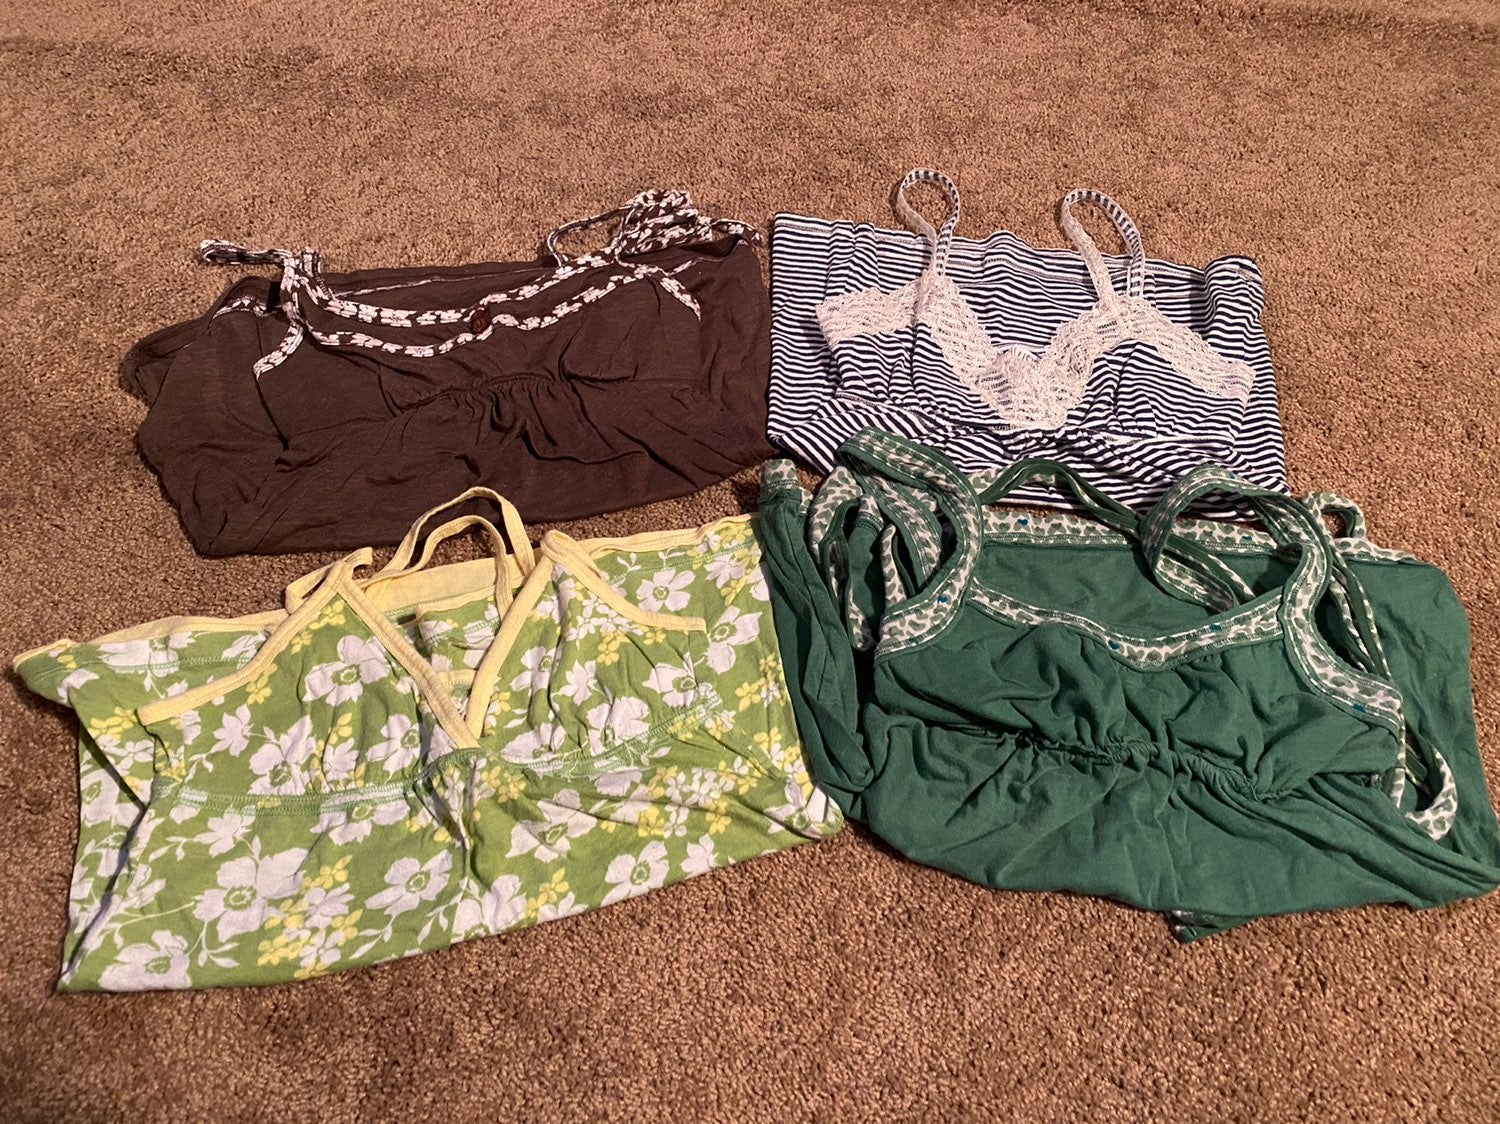 4 Hollister Tank Tops Size S